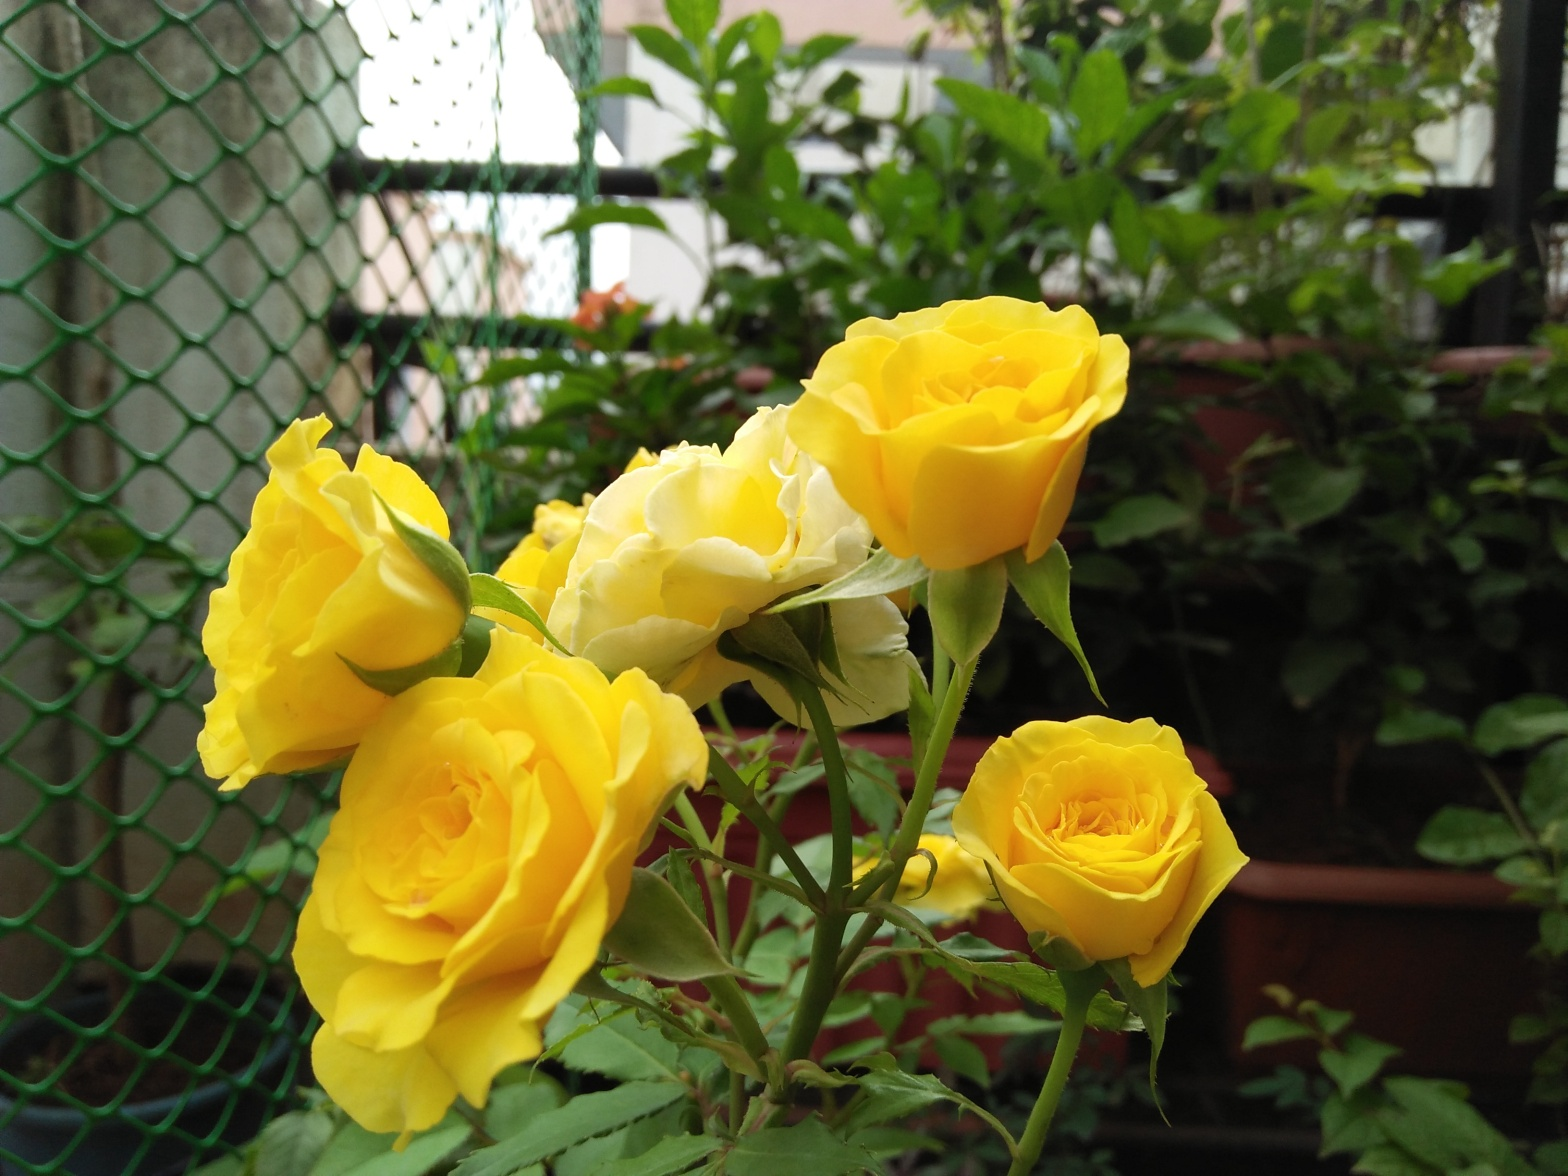 Bunch of yellow roses at Reema's Garden